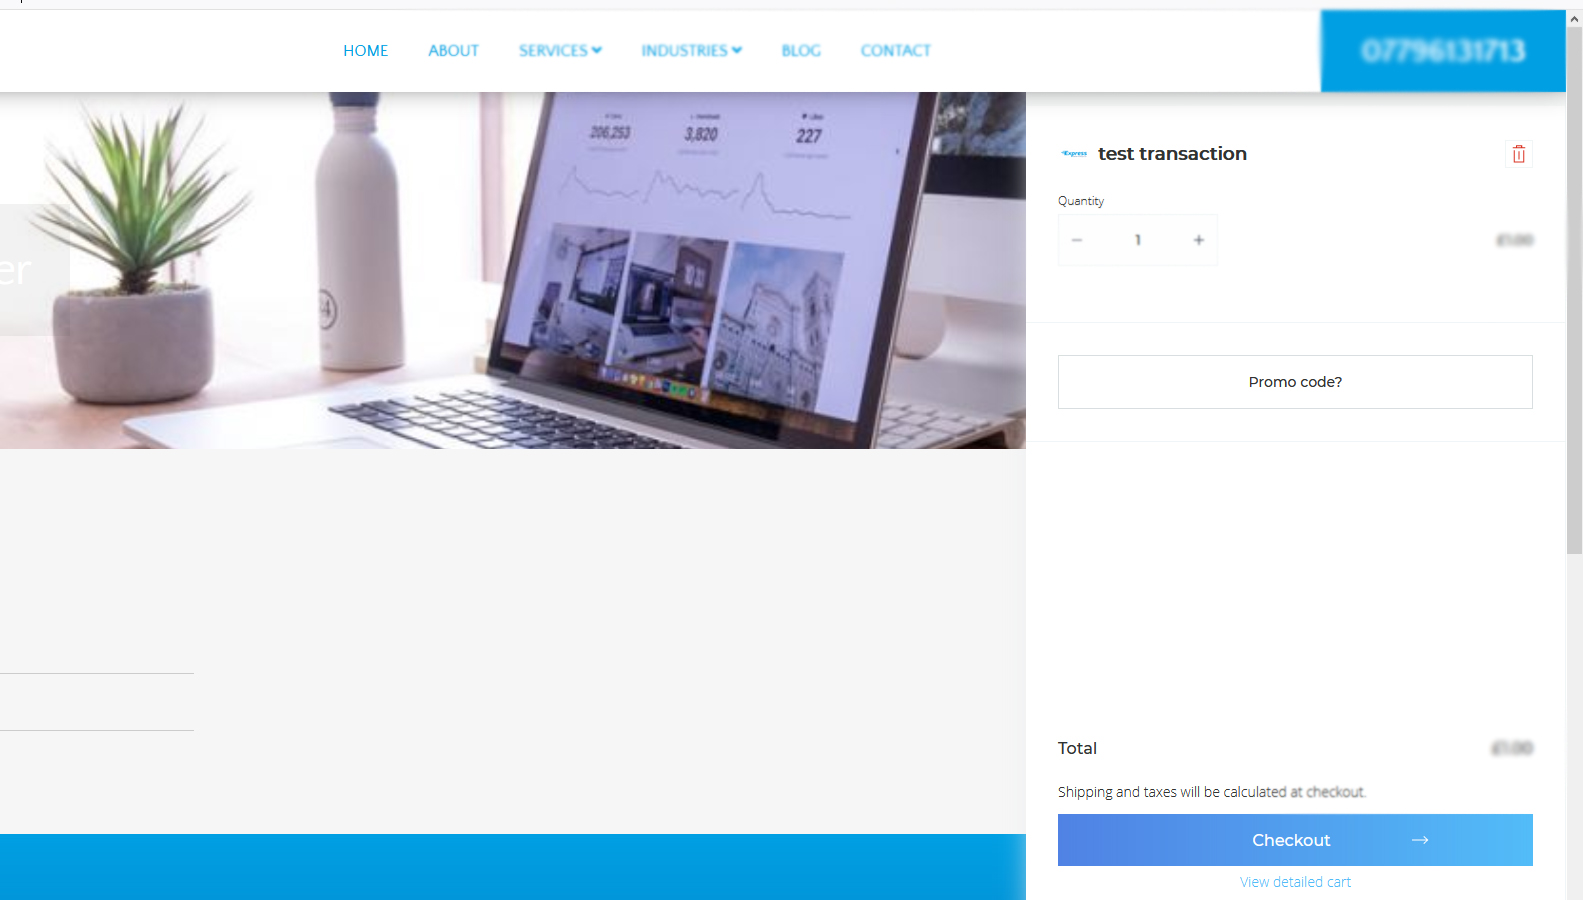 Selling your services and products online